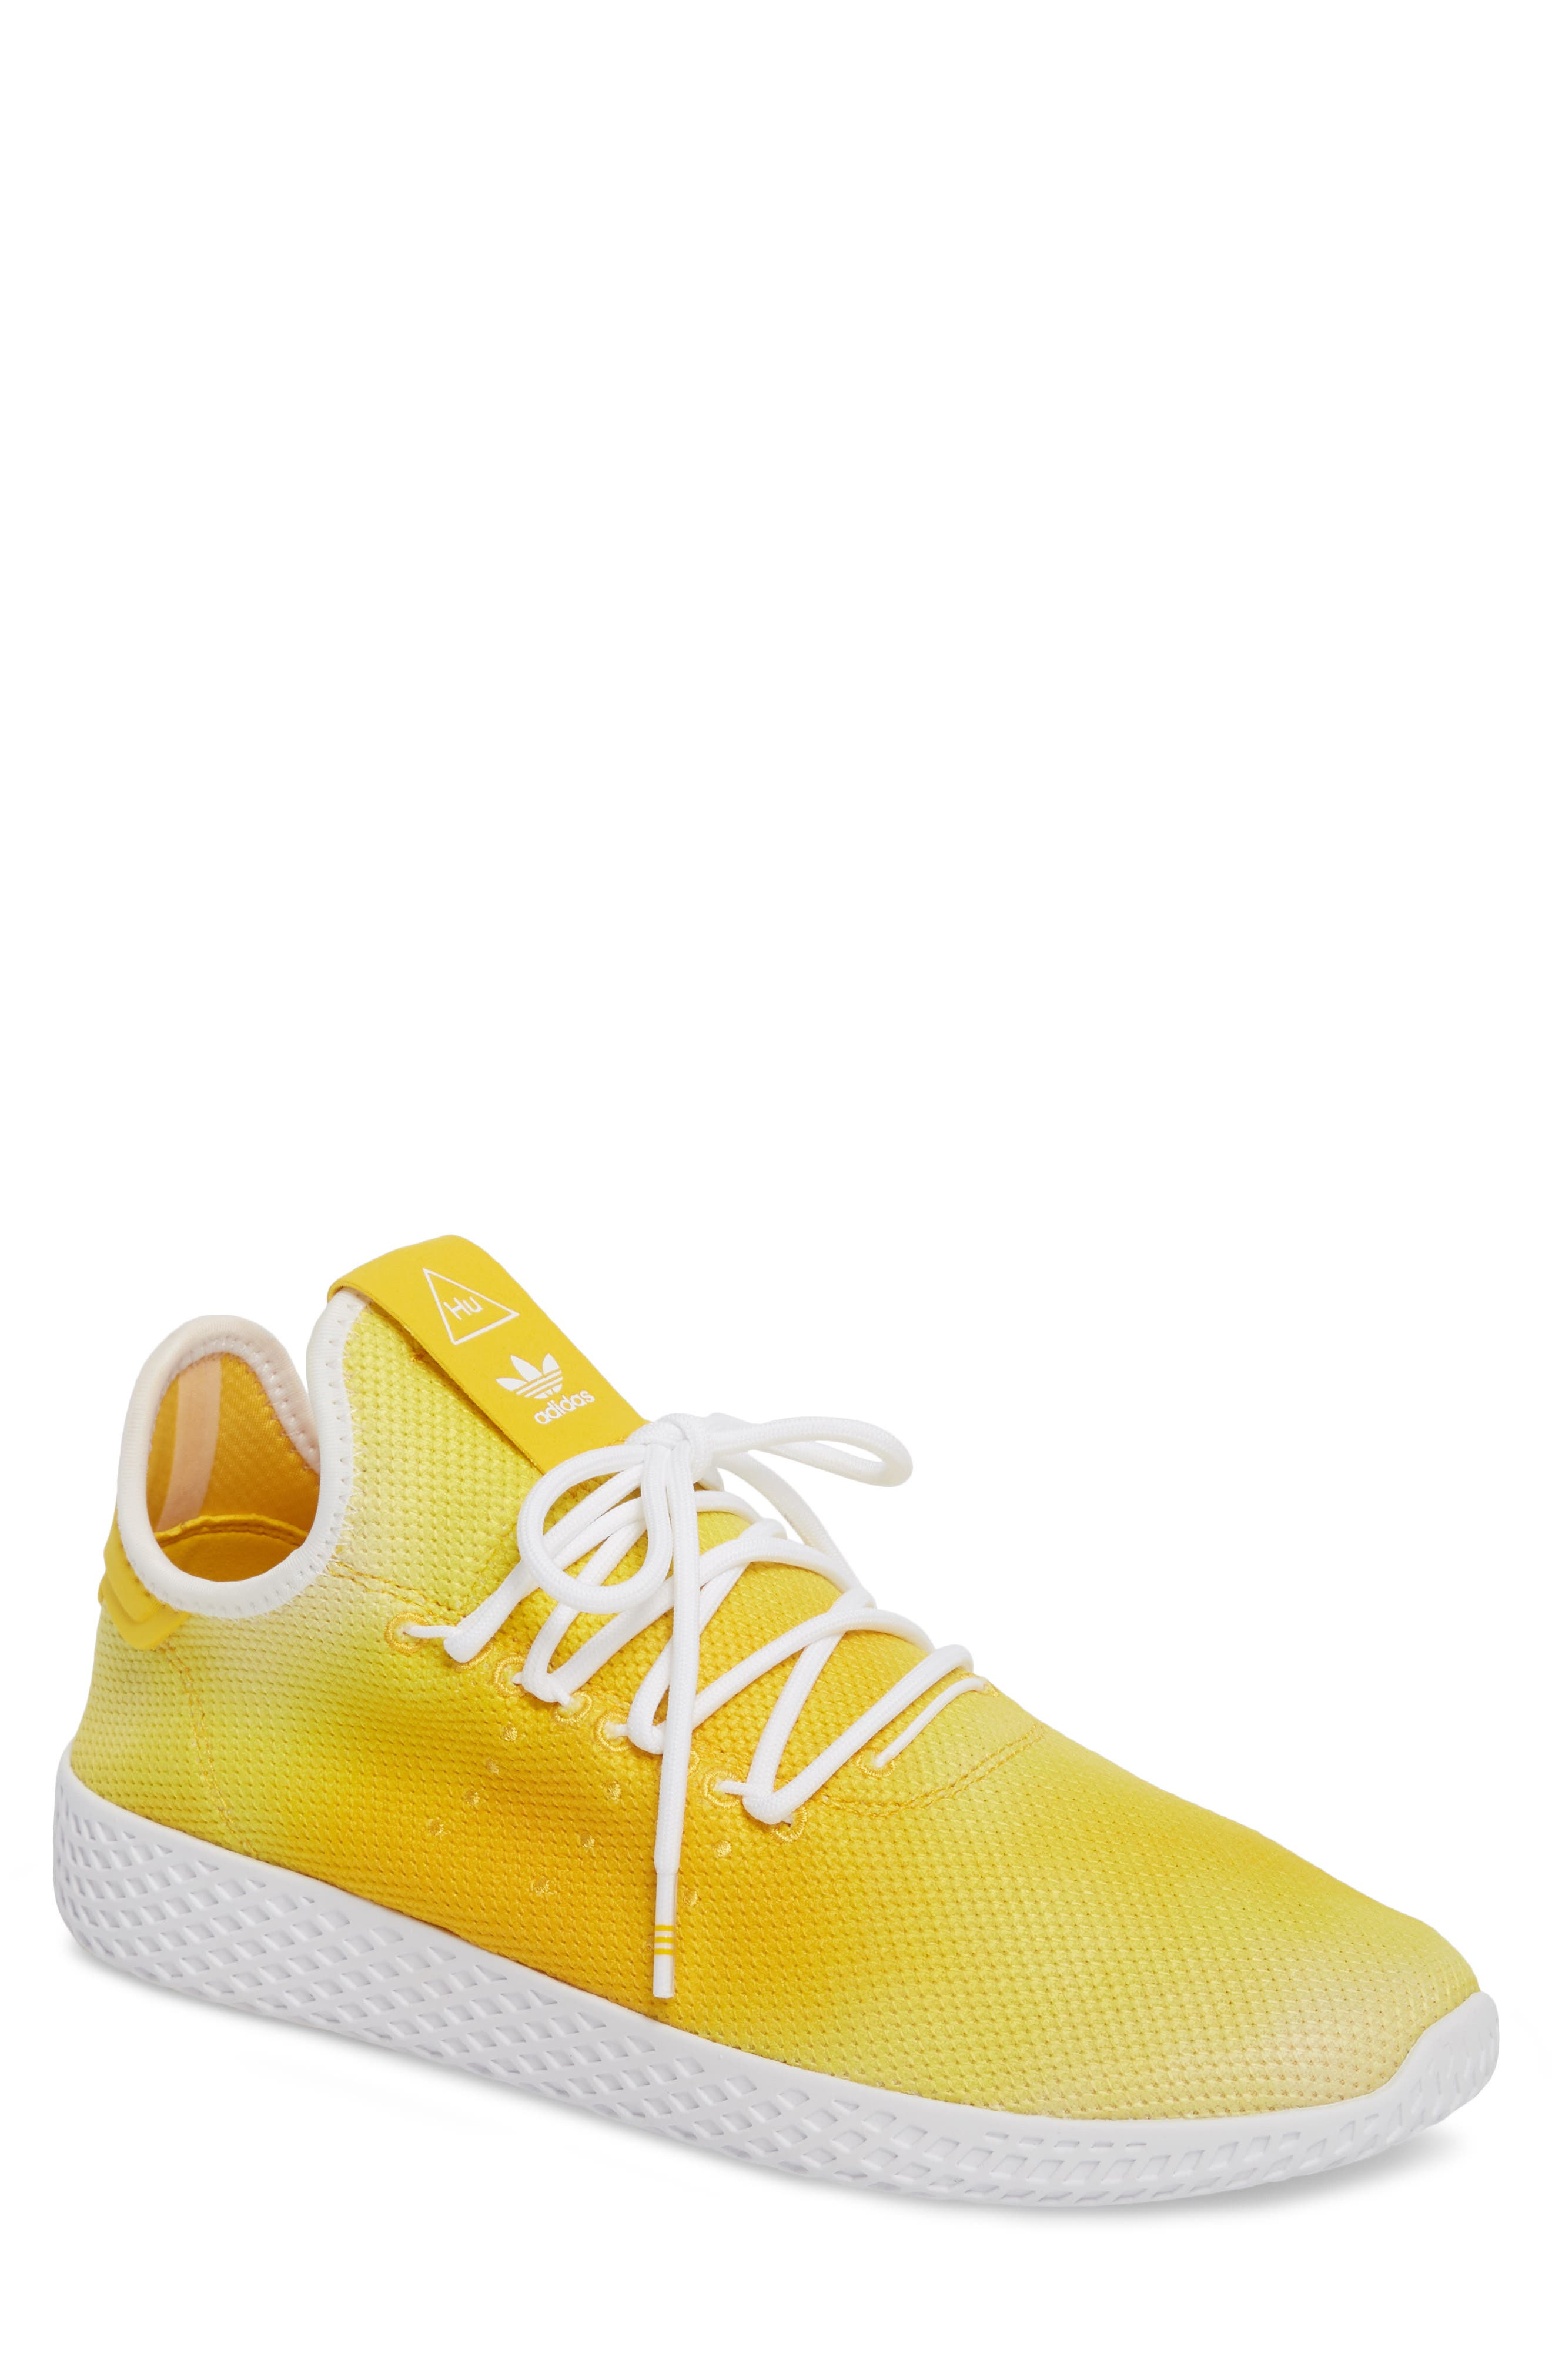 Pharrell Williams Tennis Hu Sneaker,                             Main thumbnail 1, color,                             Yellow/ White